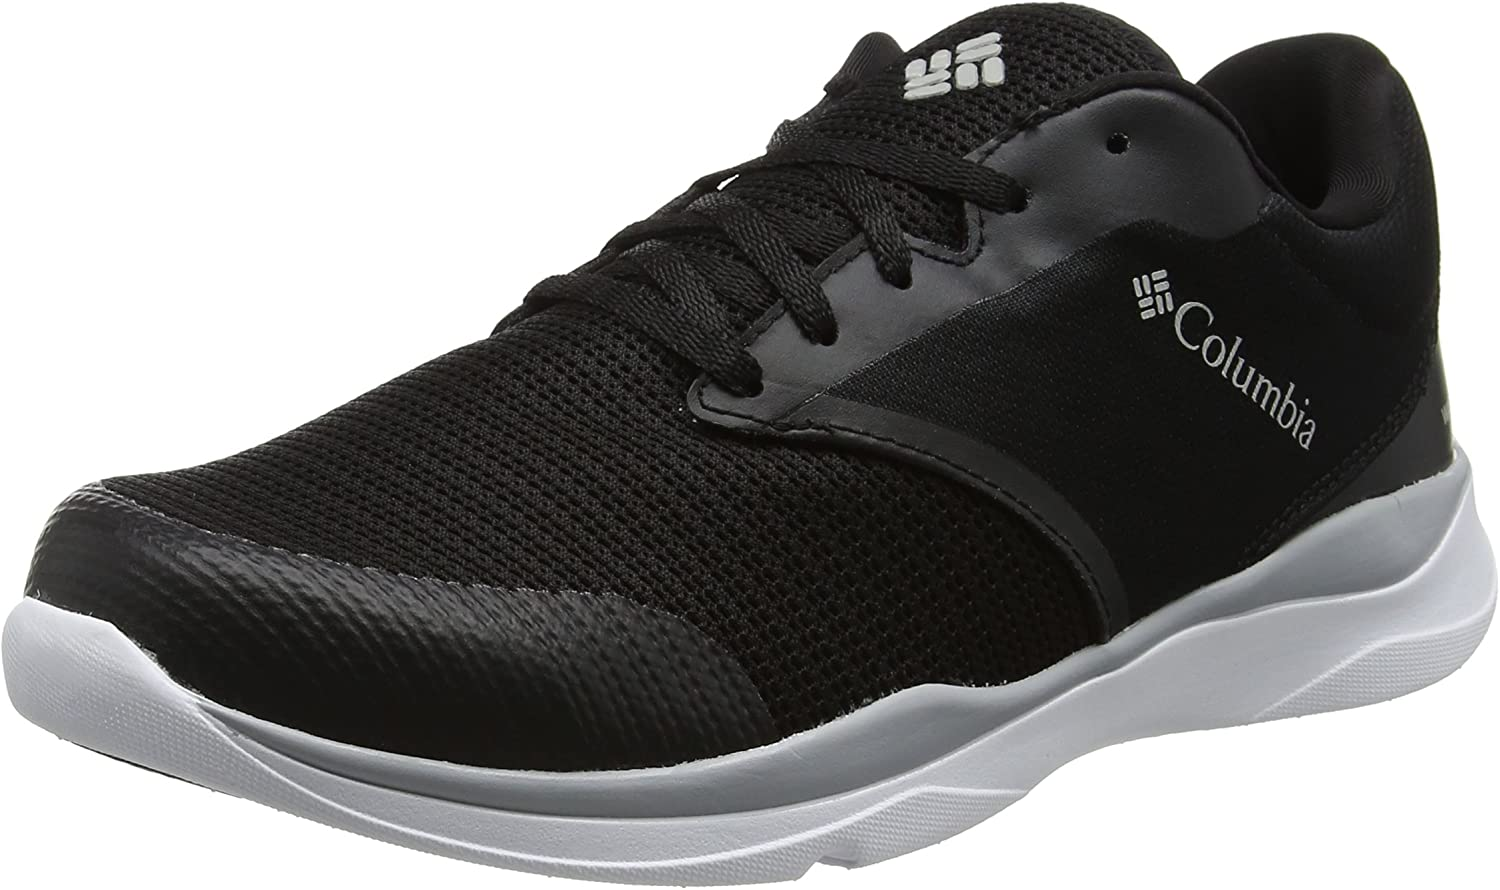 Columbia Men's ATS Trail Lite Wp Multisport Outdoor shoes